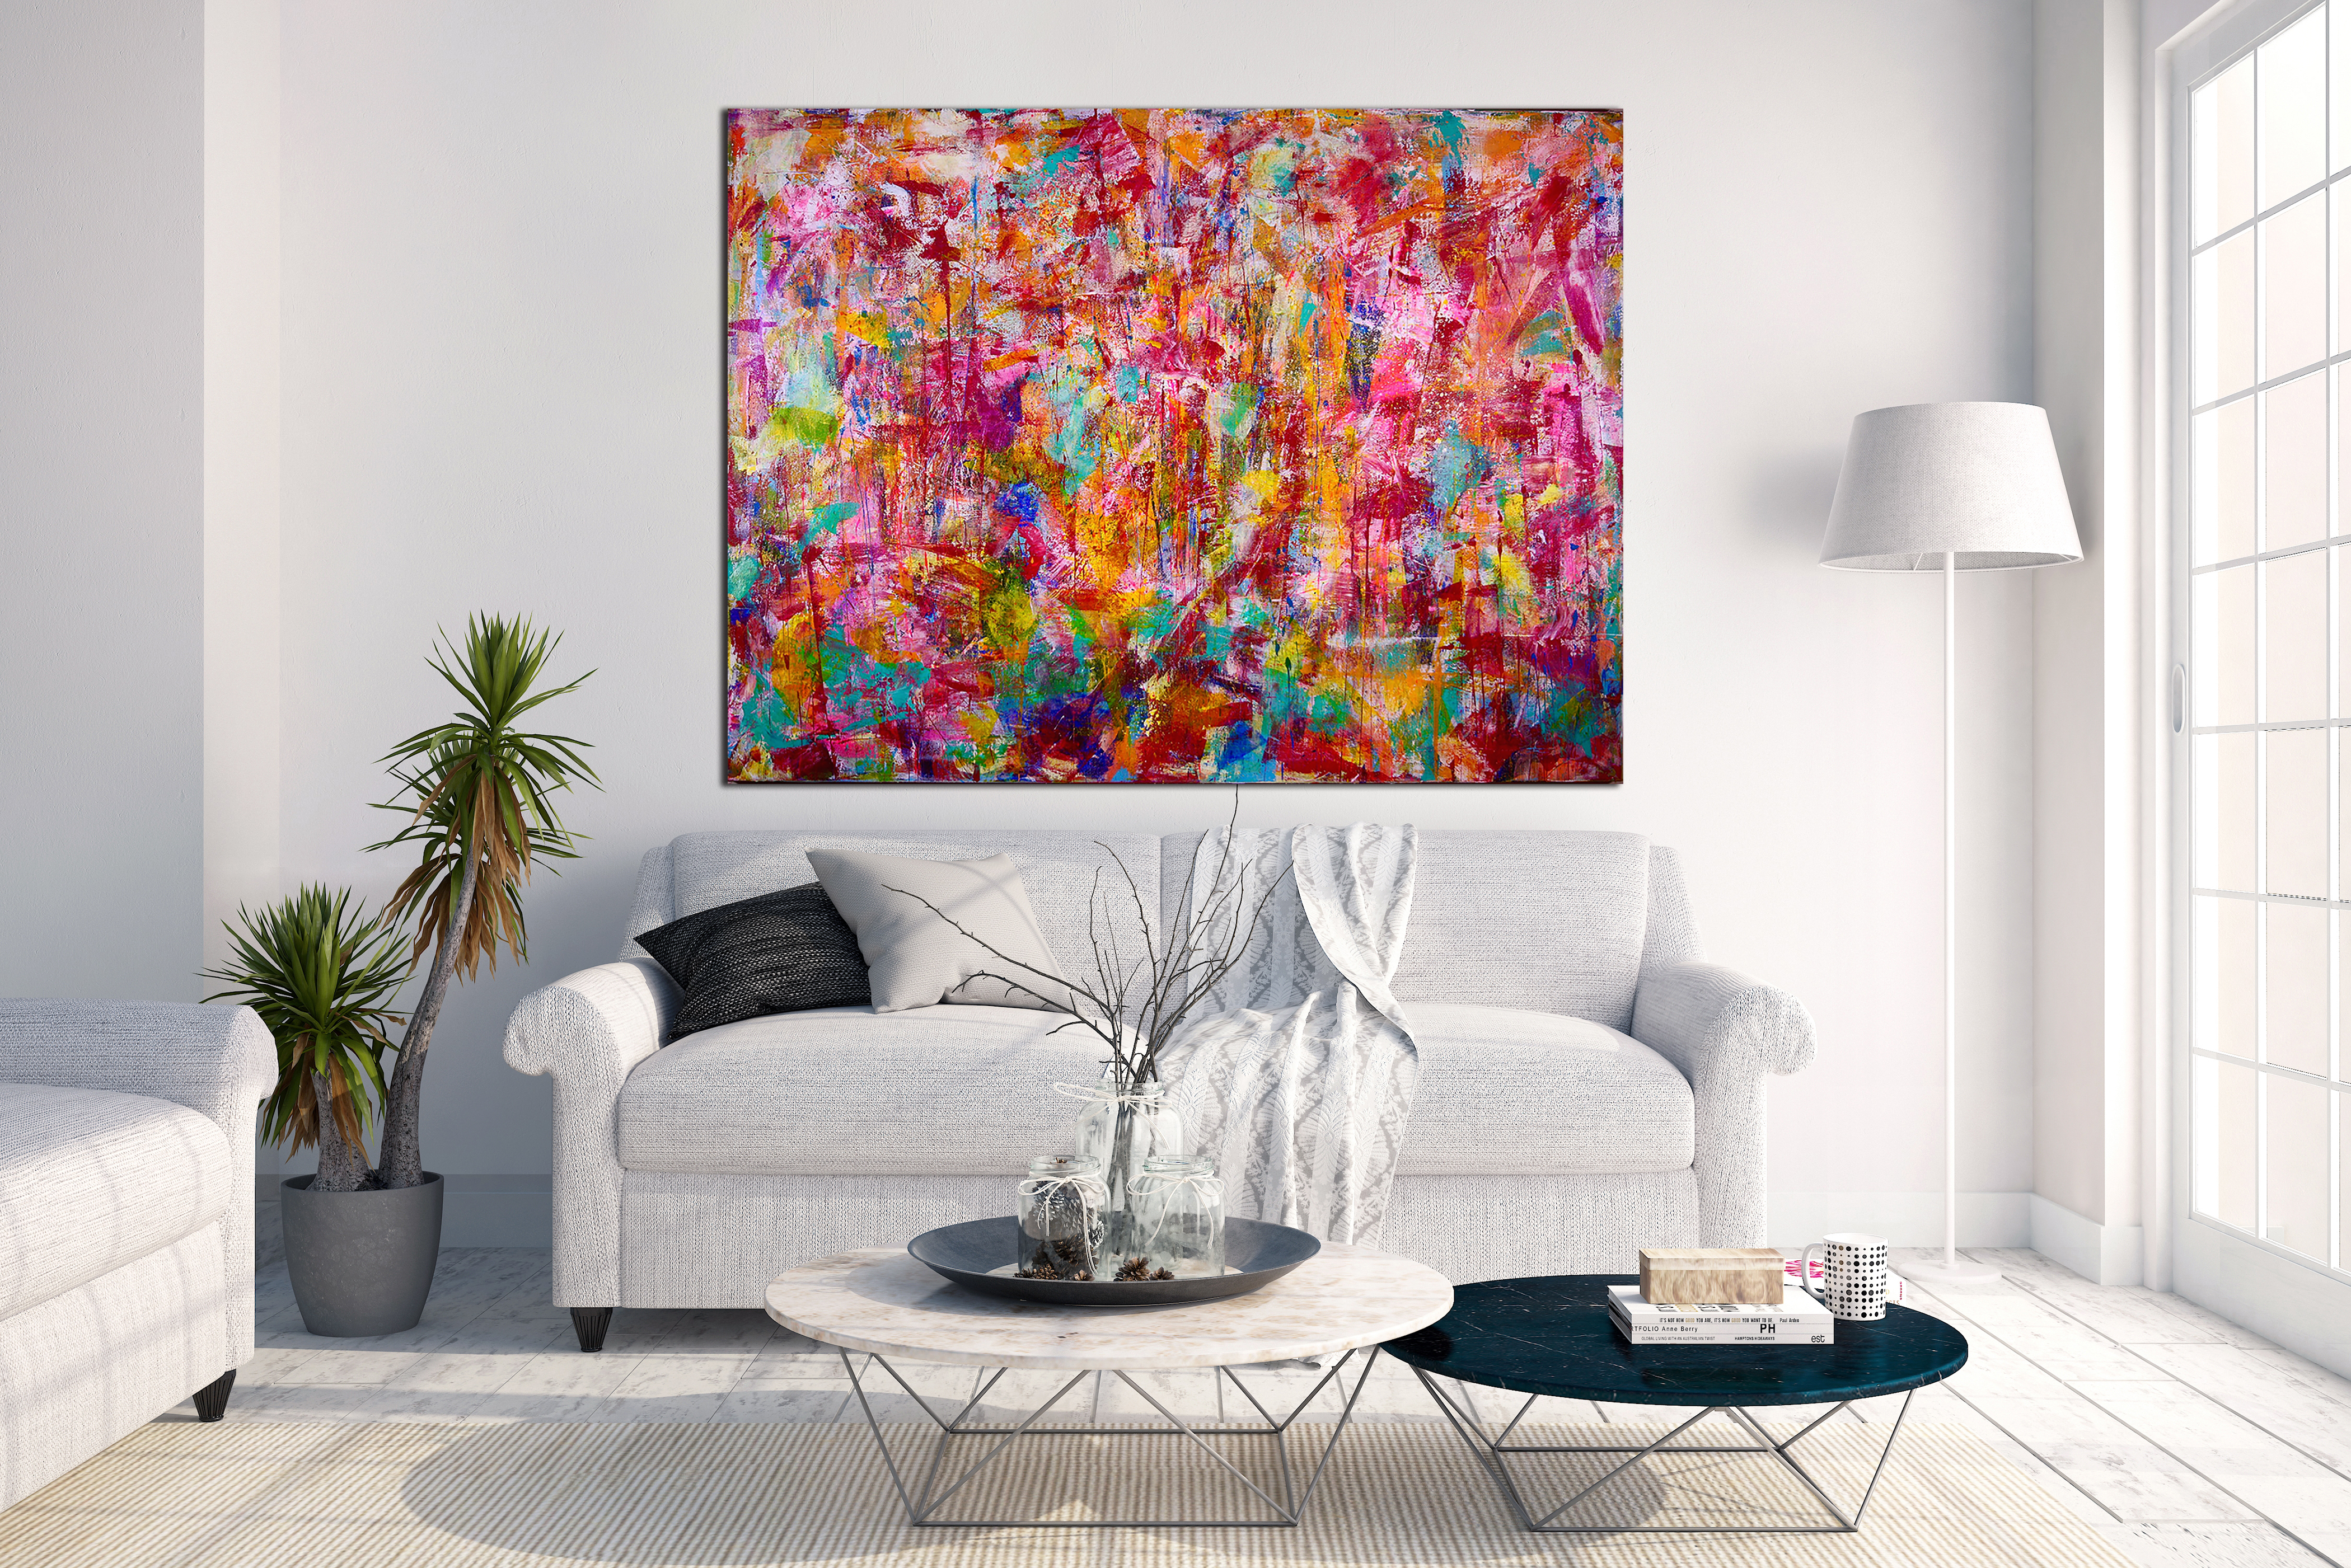 Abstract transition II (Falls) - COLORFUL STATEMENT WORK! (2015) Acrylic painting by Nestor Toro in Los Angeles